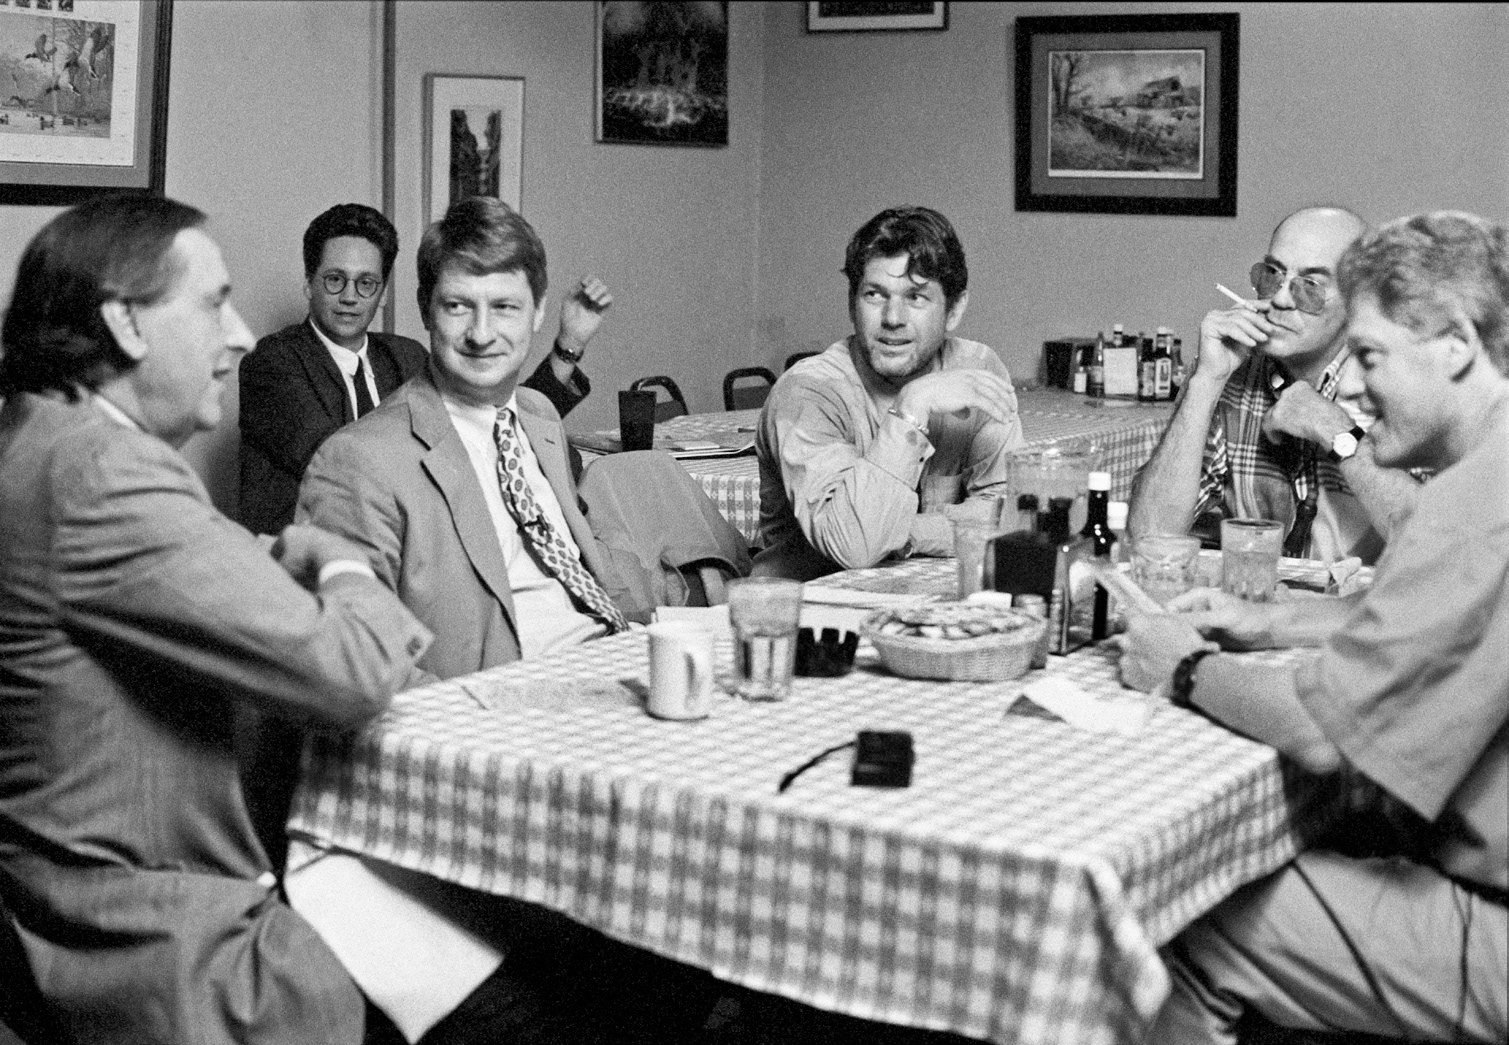 Wenner and his writers—William Greider, P.J. O'Rourke, and Hunter Thompson—interviewing Bill Clinton at Doe's Eat Place, in Little Rock, Arkansas, 1992 (Mark Seliger)